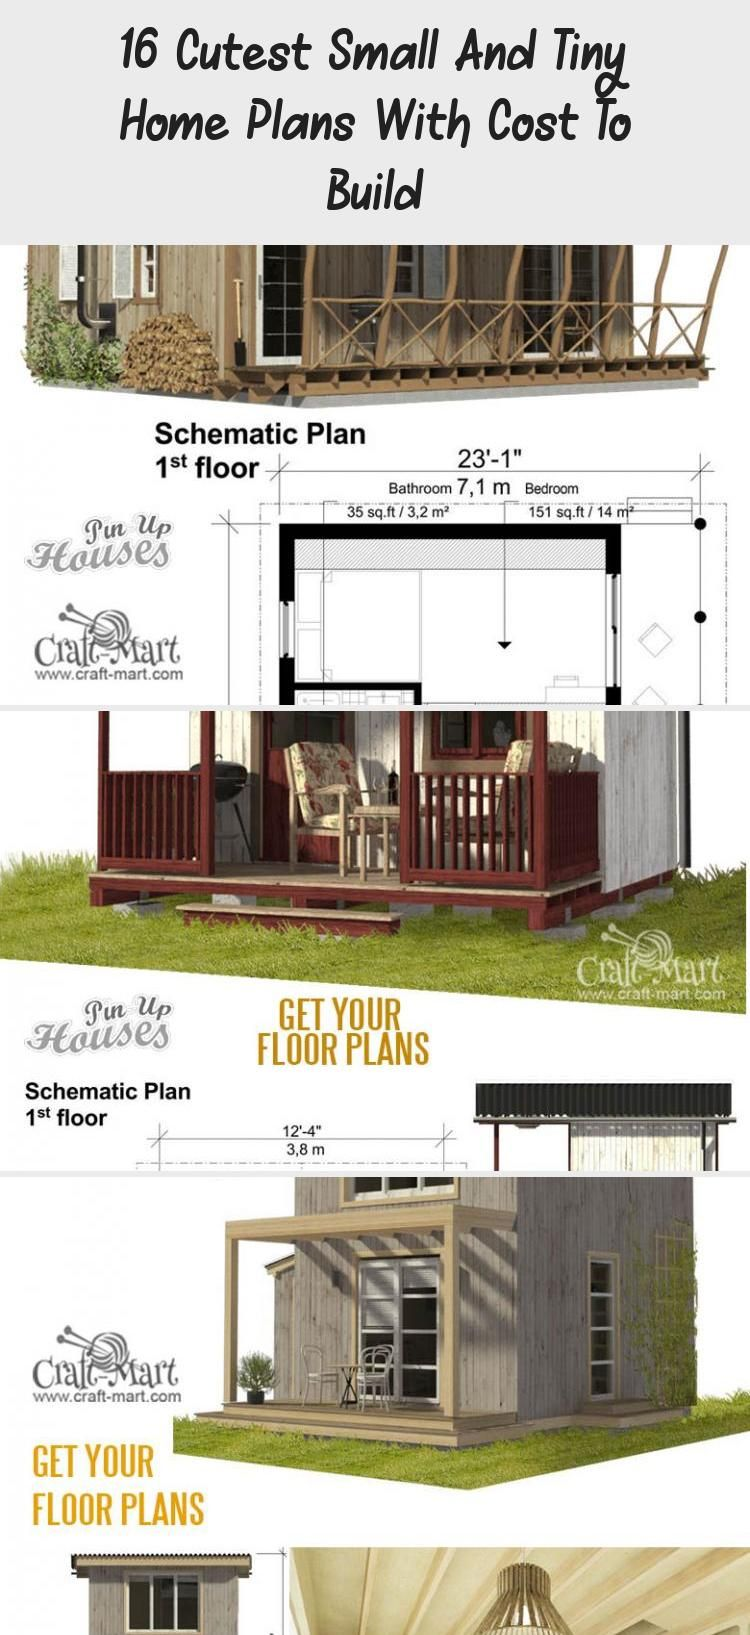 16 Cutest Small And Tiny Home Plans With Cost To Build Tiny House Plans House Plans Tiny House Australia